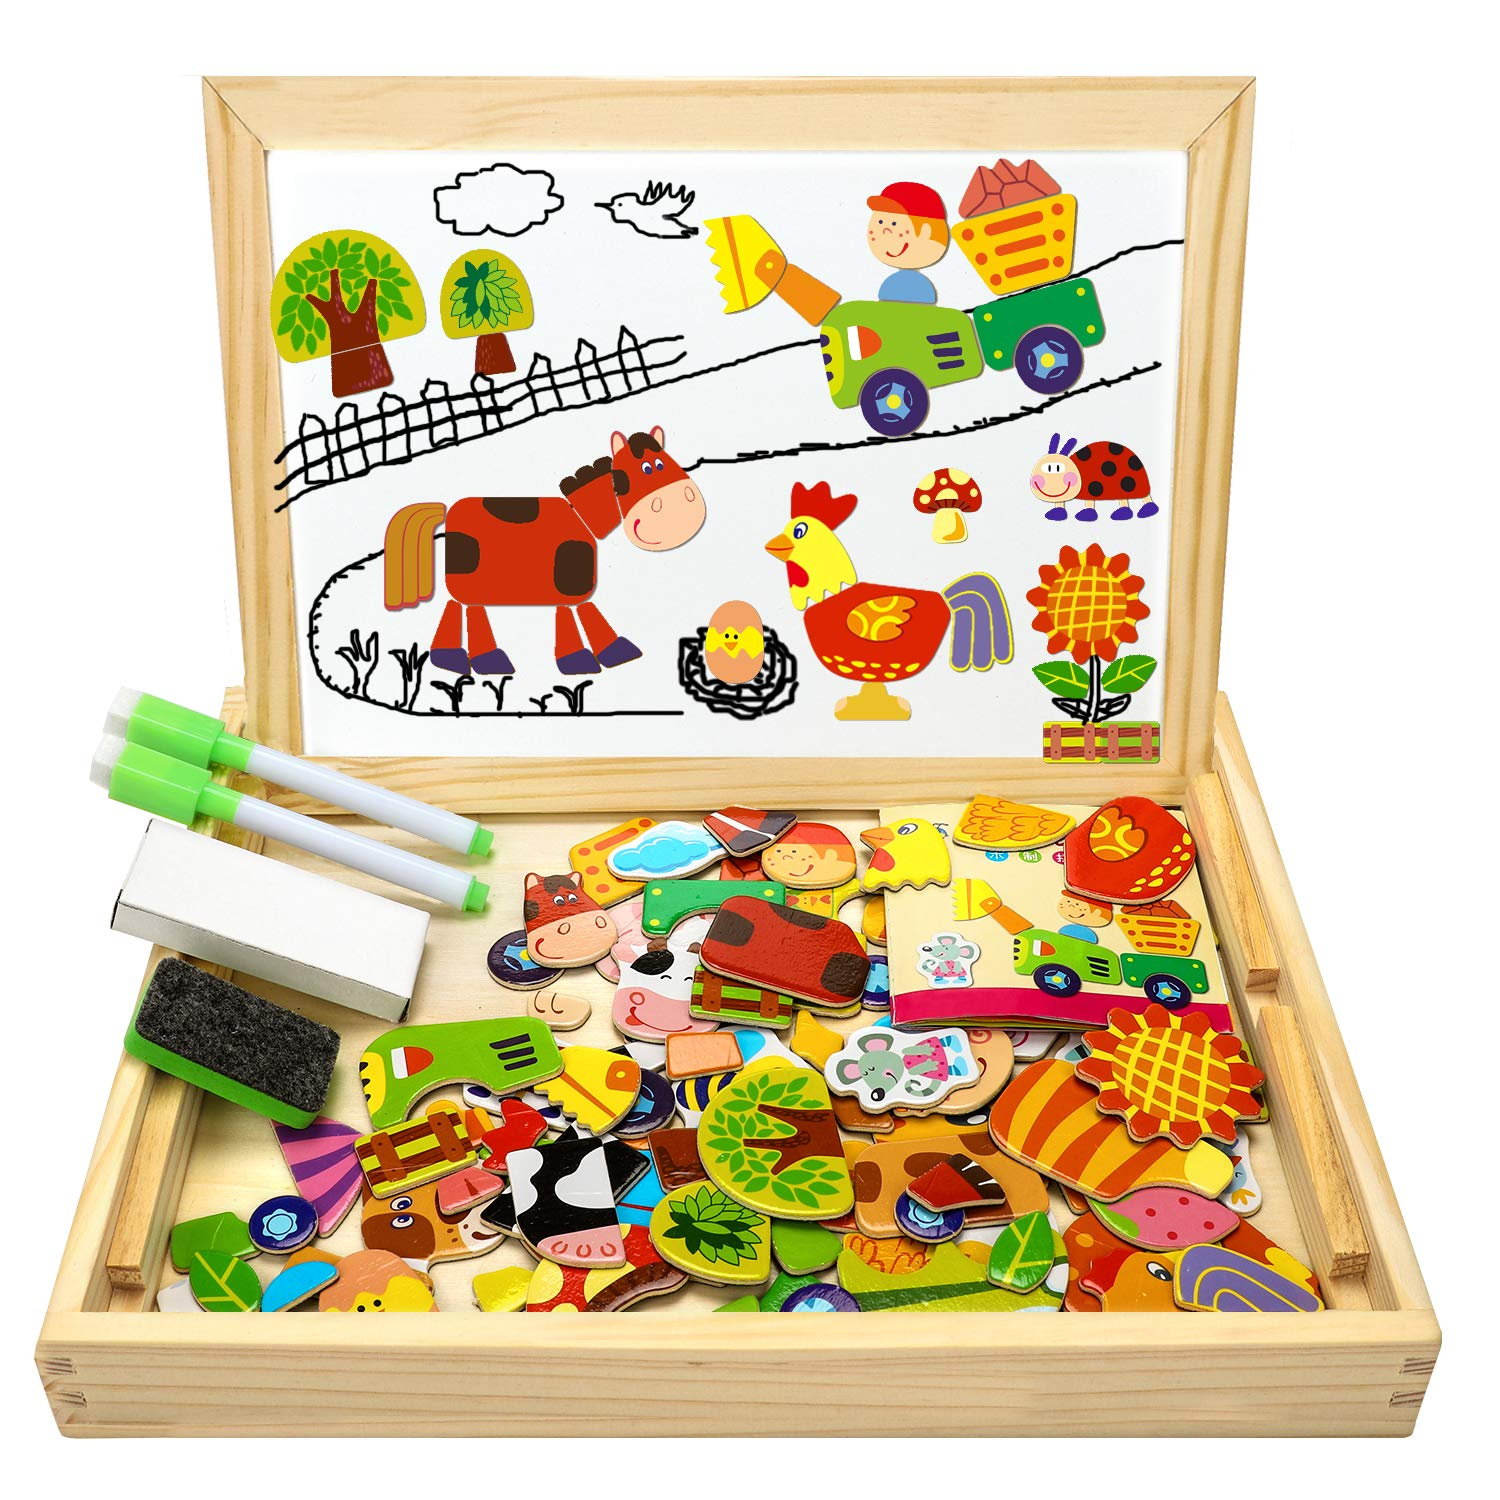 COOLJOY Wooden Magnetic Board Puzzle Games, 100+ PCS Double Sided Jigsaw Farm Pattern Drawing Easel Blackboard Educational Wood Toys for Boys Girls Kids Toddler Over 3 Year Olds